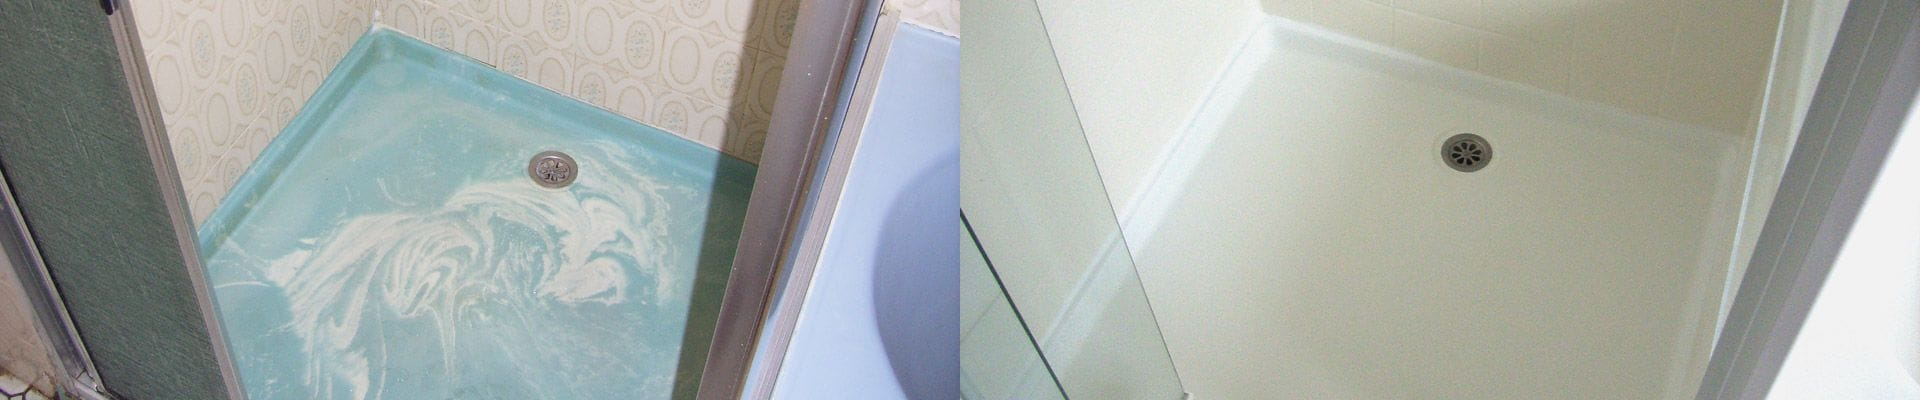 Bathroom Enamel Resurfacing